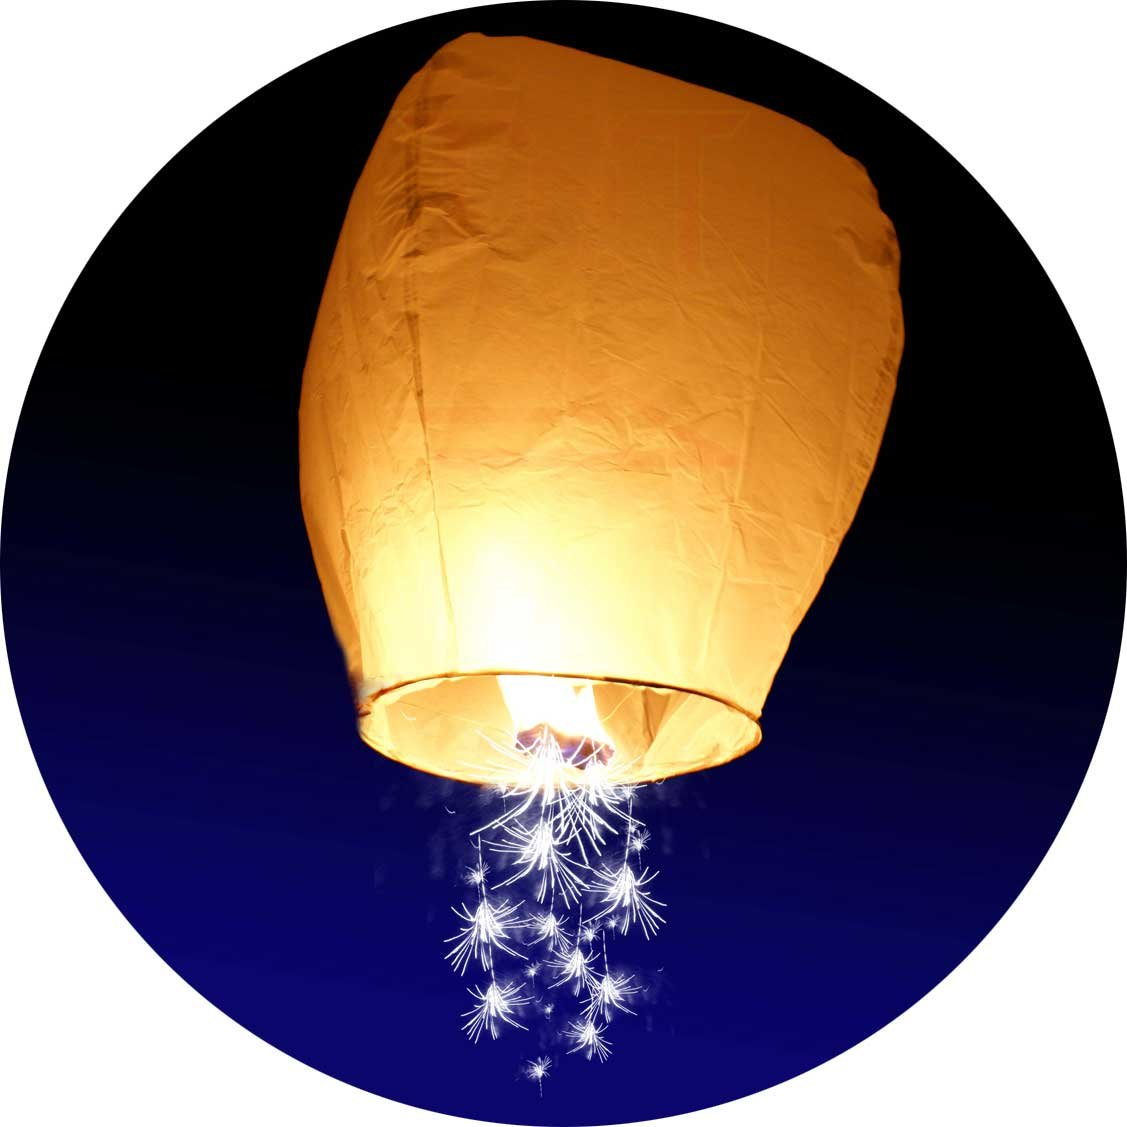 10-Pack - Sparkler Chinese Lantern - Make a Wish on a Shooting Star Sky Lanterns - Eco-Friendly Biodegradable Magical for Birthday Party or Wedding - Big Wishing Balloons - by TnT Sales in Michigan by The Original Sky Lantern, TnT Sales